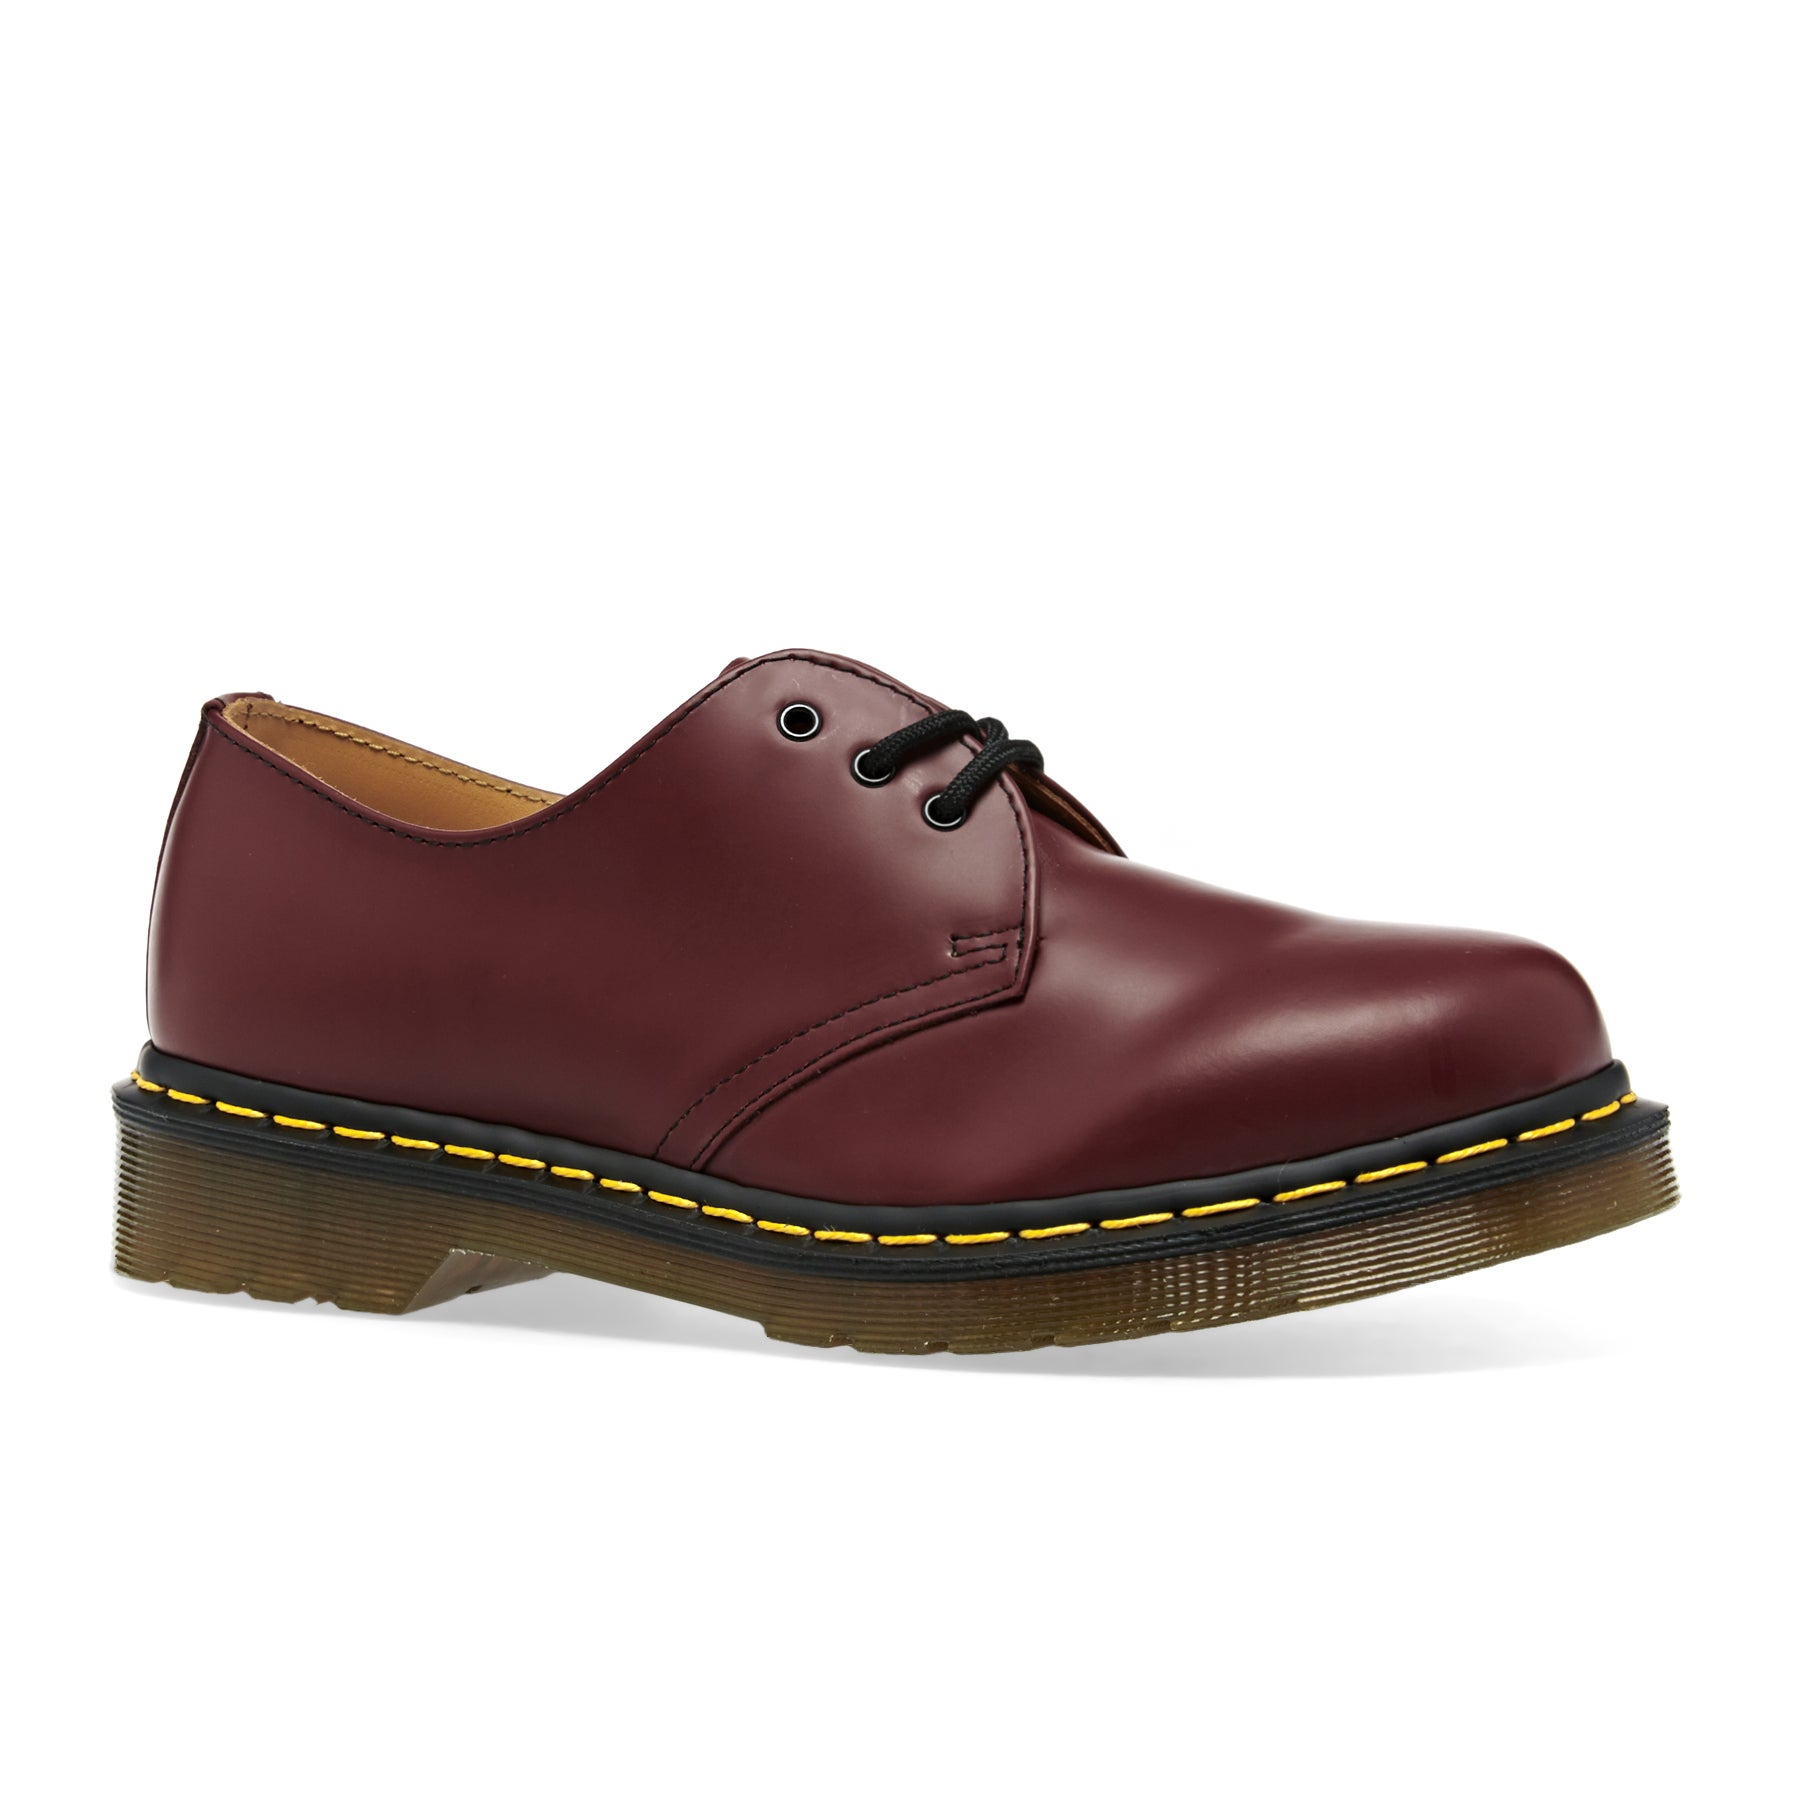 Surfdome Dr De Martens De Surfdome Dr Disponible Dr Martens Disponible 3ARjL54